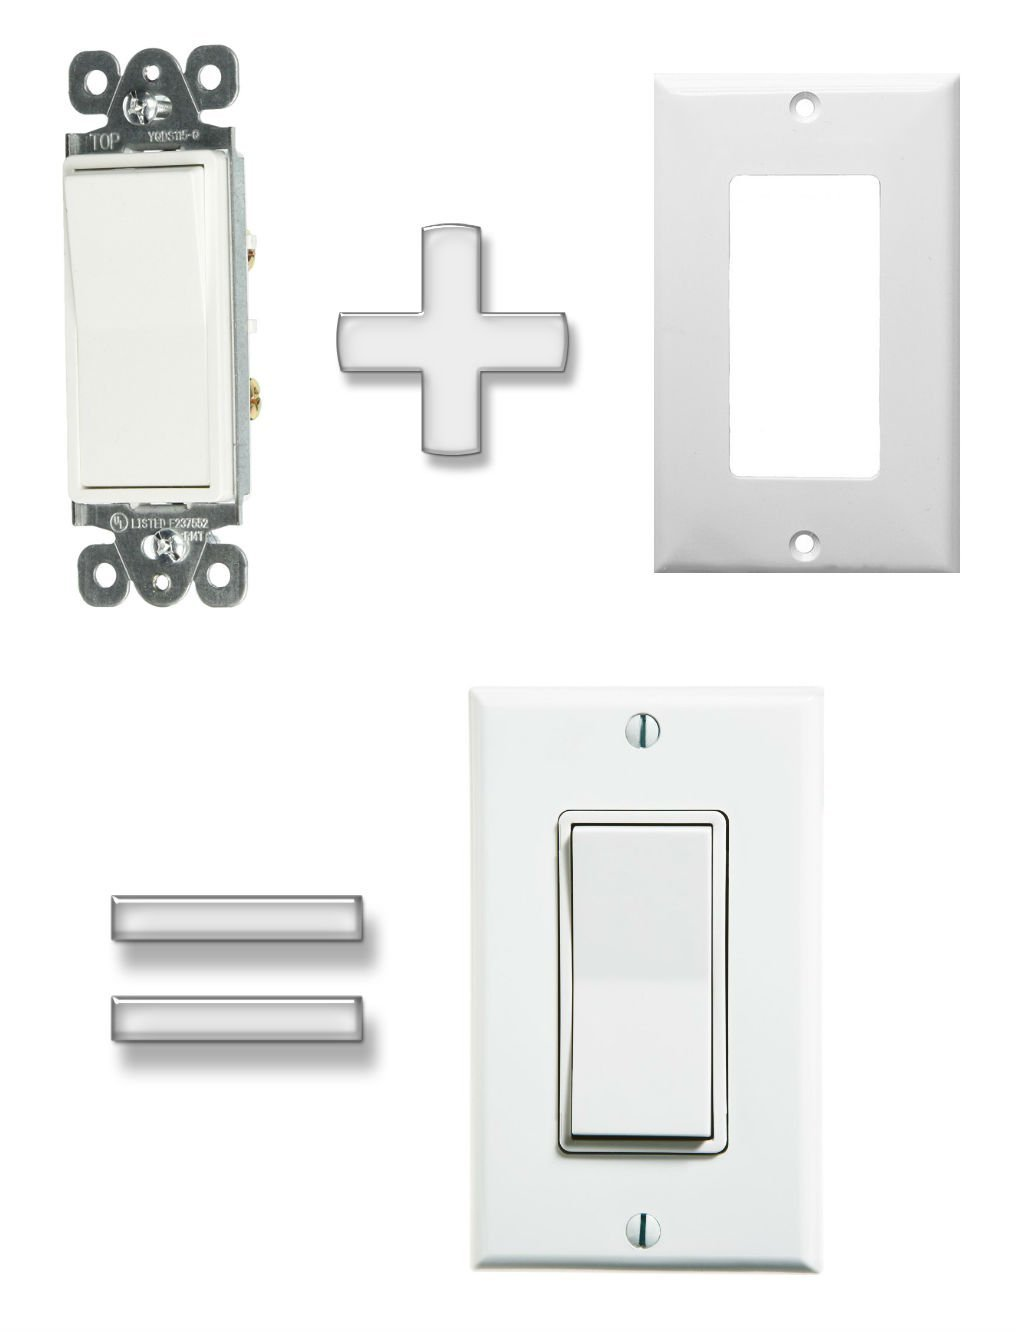 Decorative Light Switch & Wall Plate 2 items: Morris Products Item 82051 Decorative Switch Single Pole 15A-120/277V + Morris Products Item 81111 Lexan Wall Plates 1 Gang Decorative/GFCI White